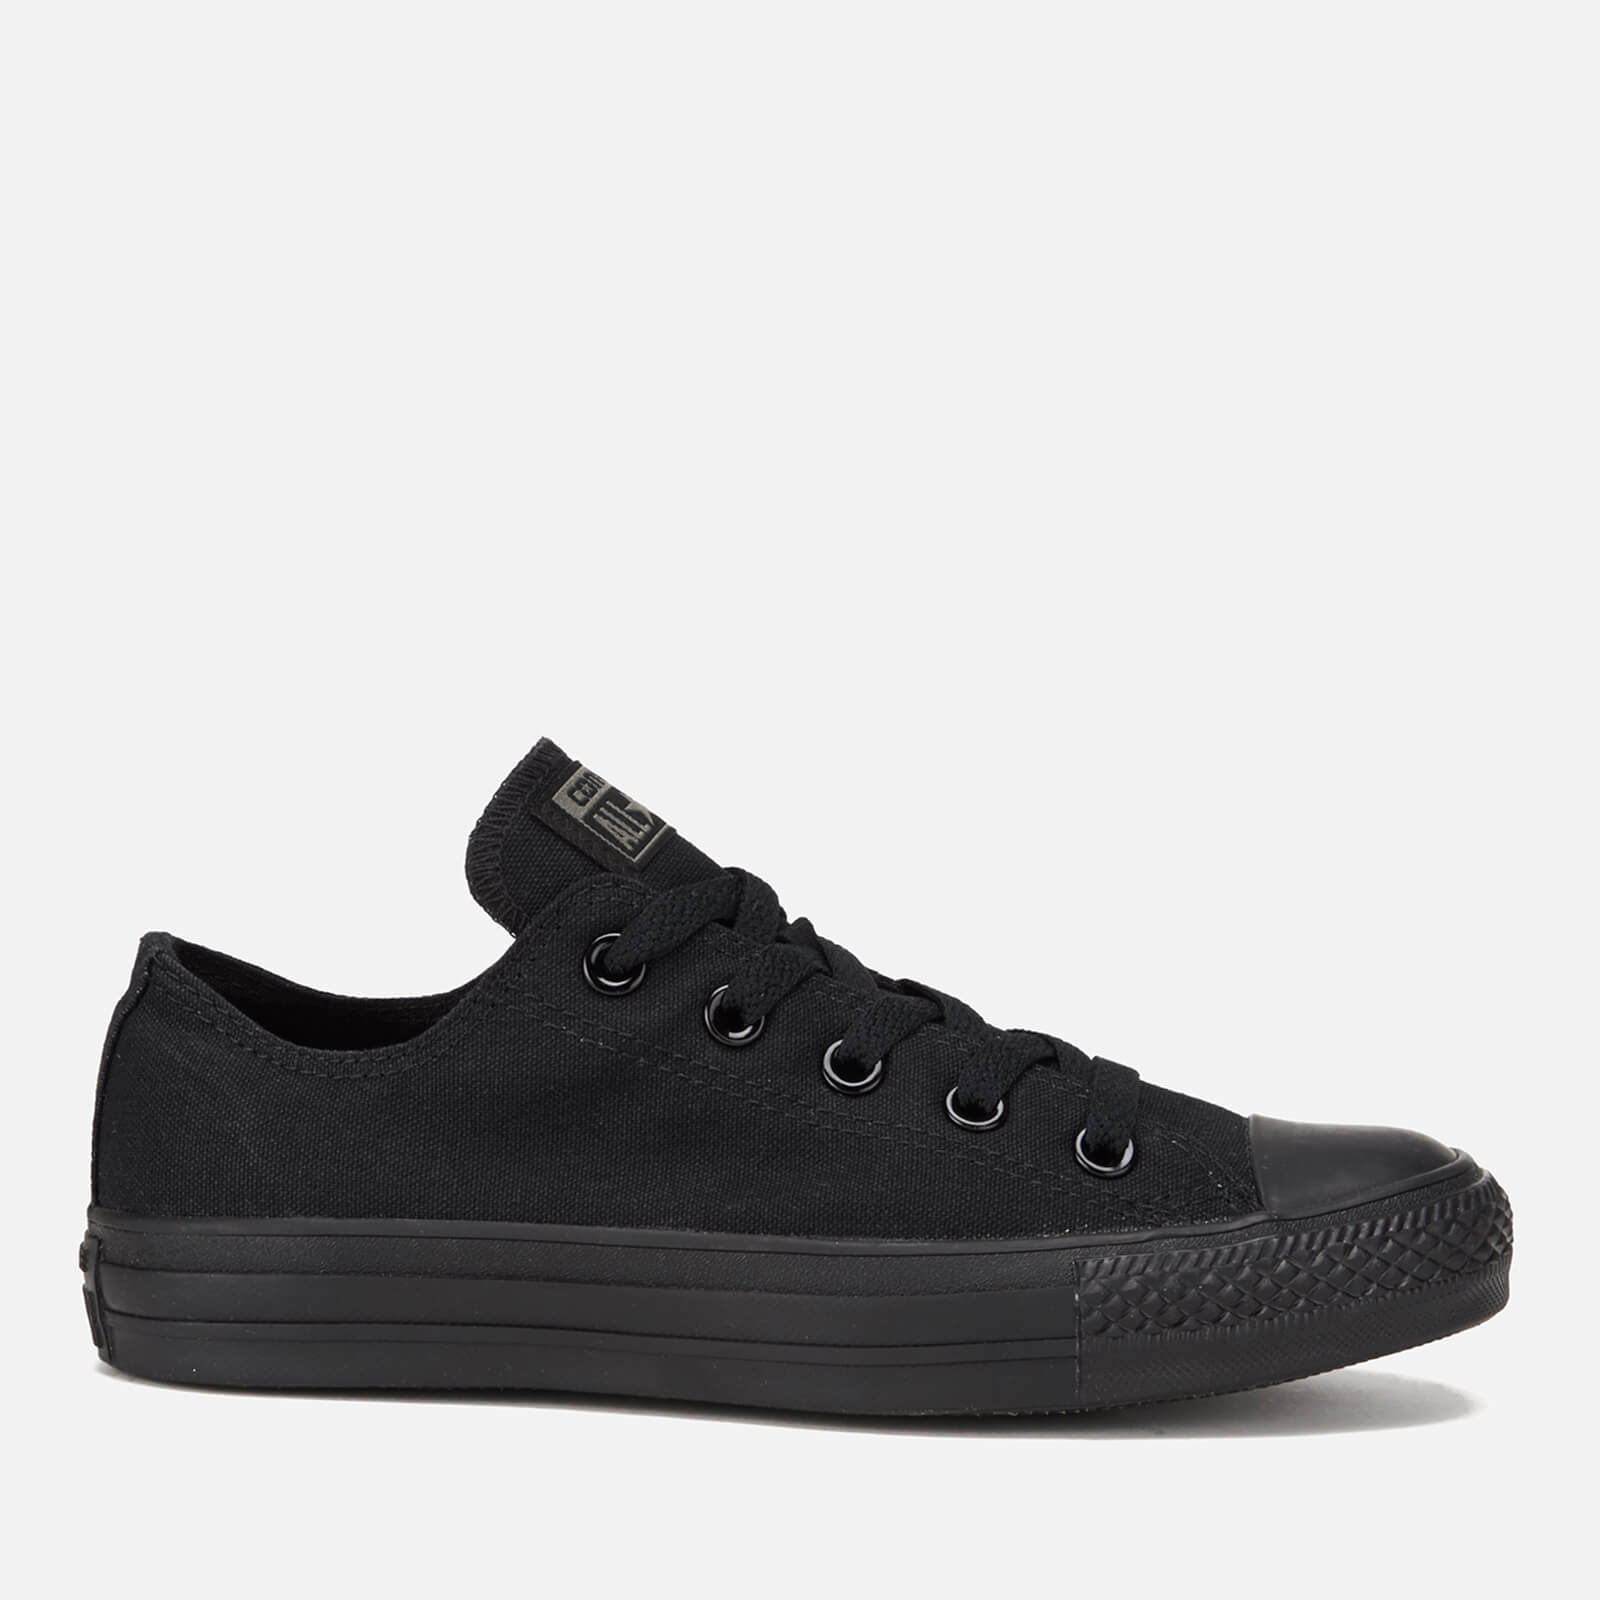 Converse Chuck Taylor All Star Ox Canvas Trainers Black Monochrome Uk 7